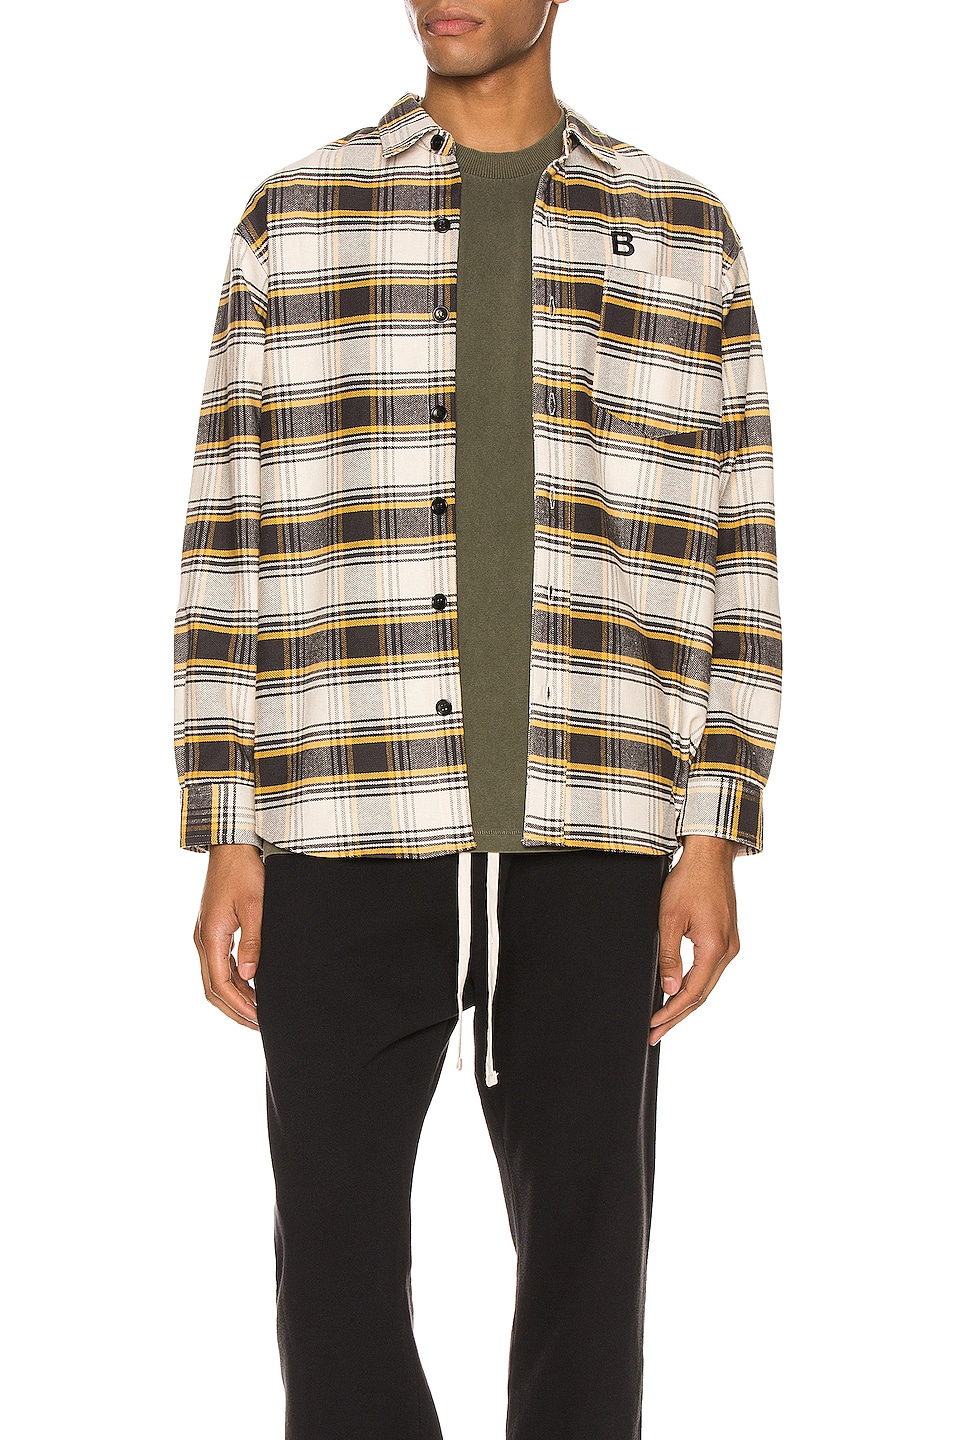 Image 1 of Billy Flannel Shirt in Black